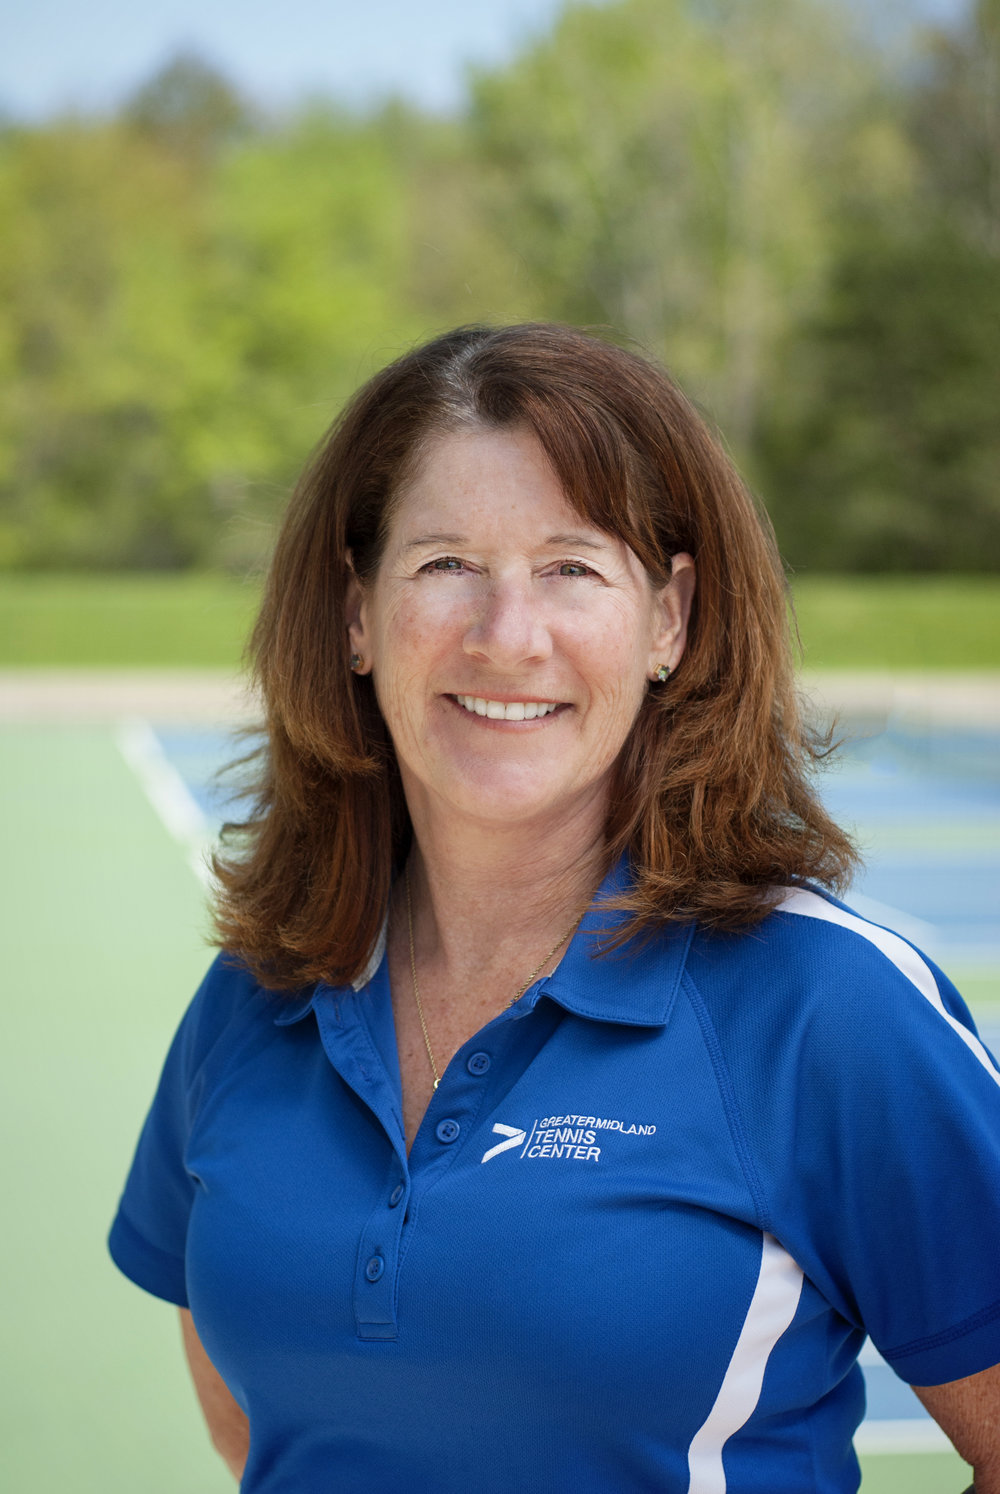 Sally Wasserman  Assistant Director of TennisWhizz